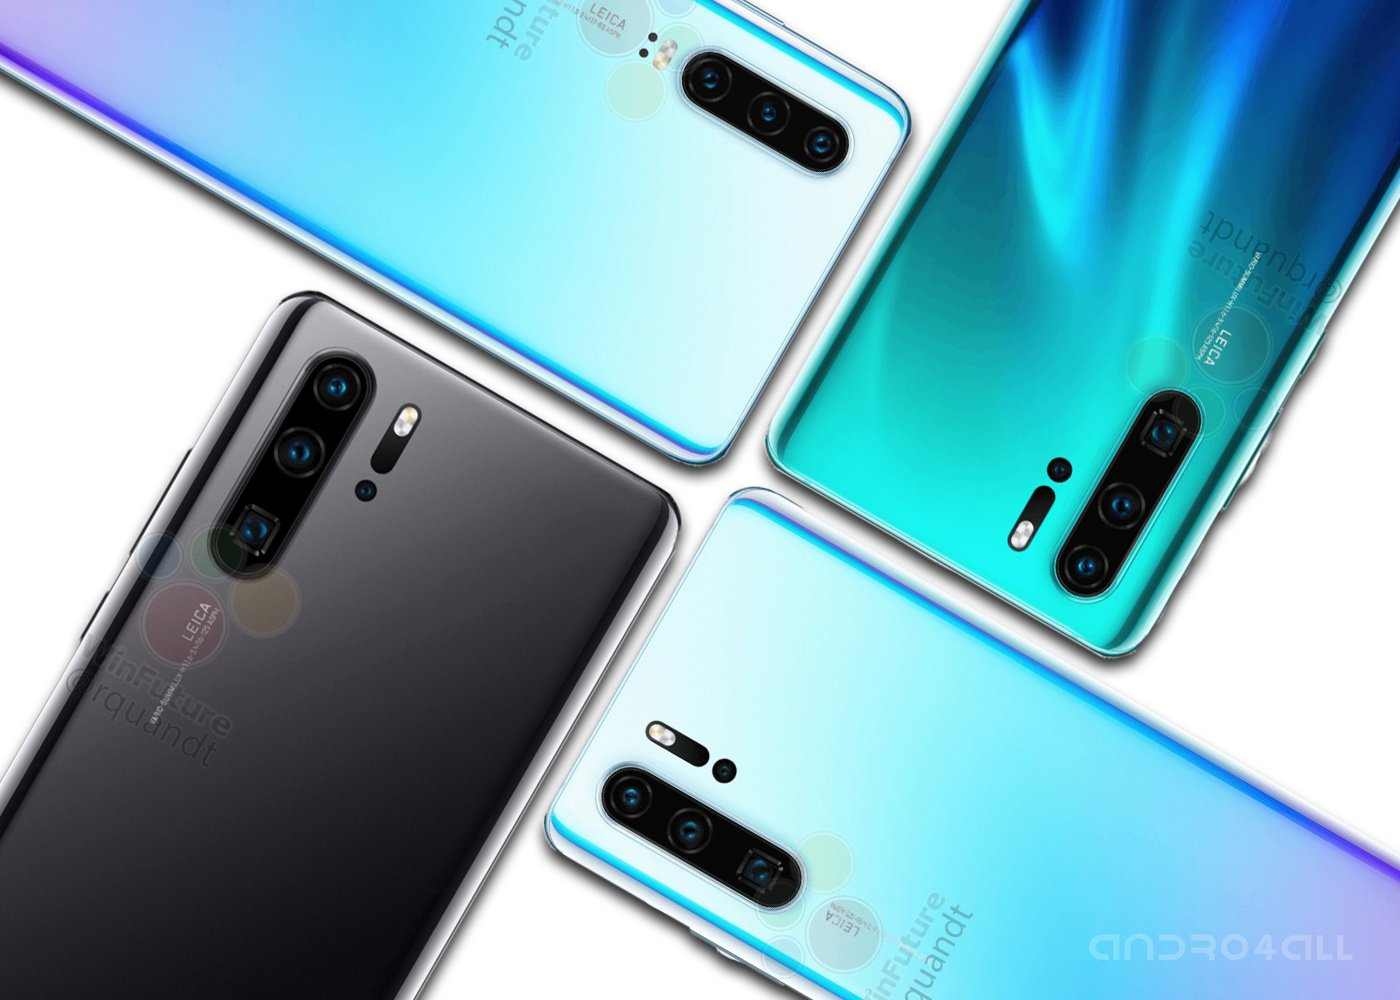 Up Periscope The Huawei P30 Pro Could Come With A